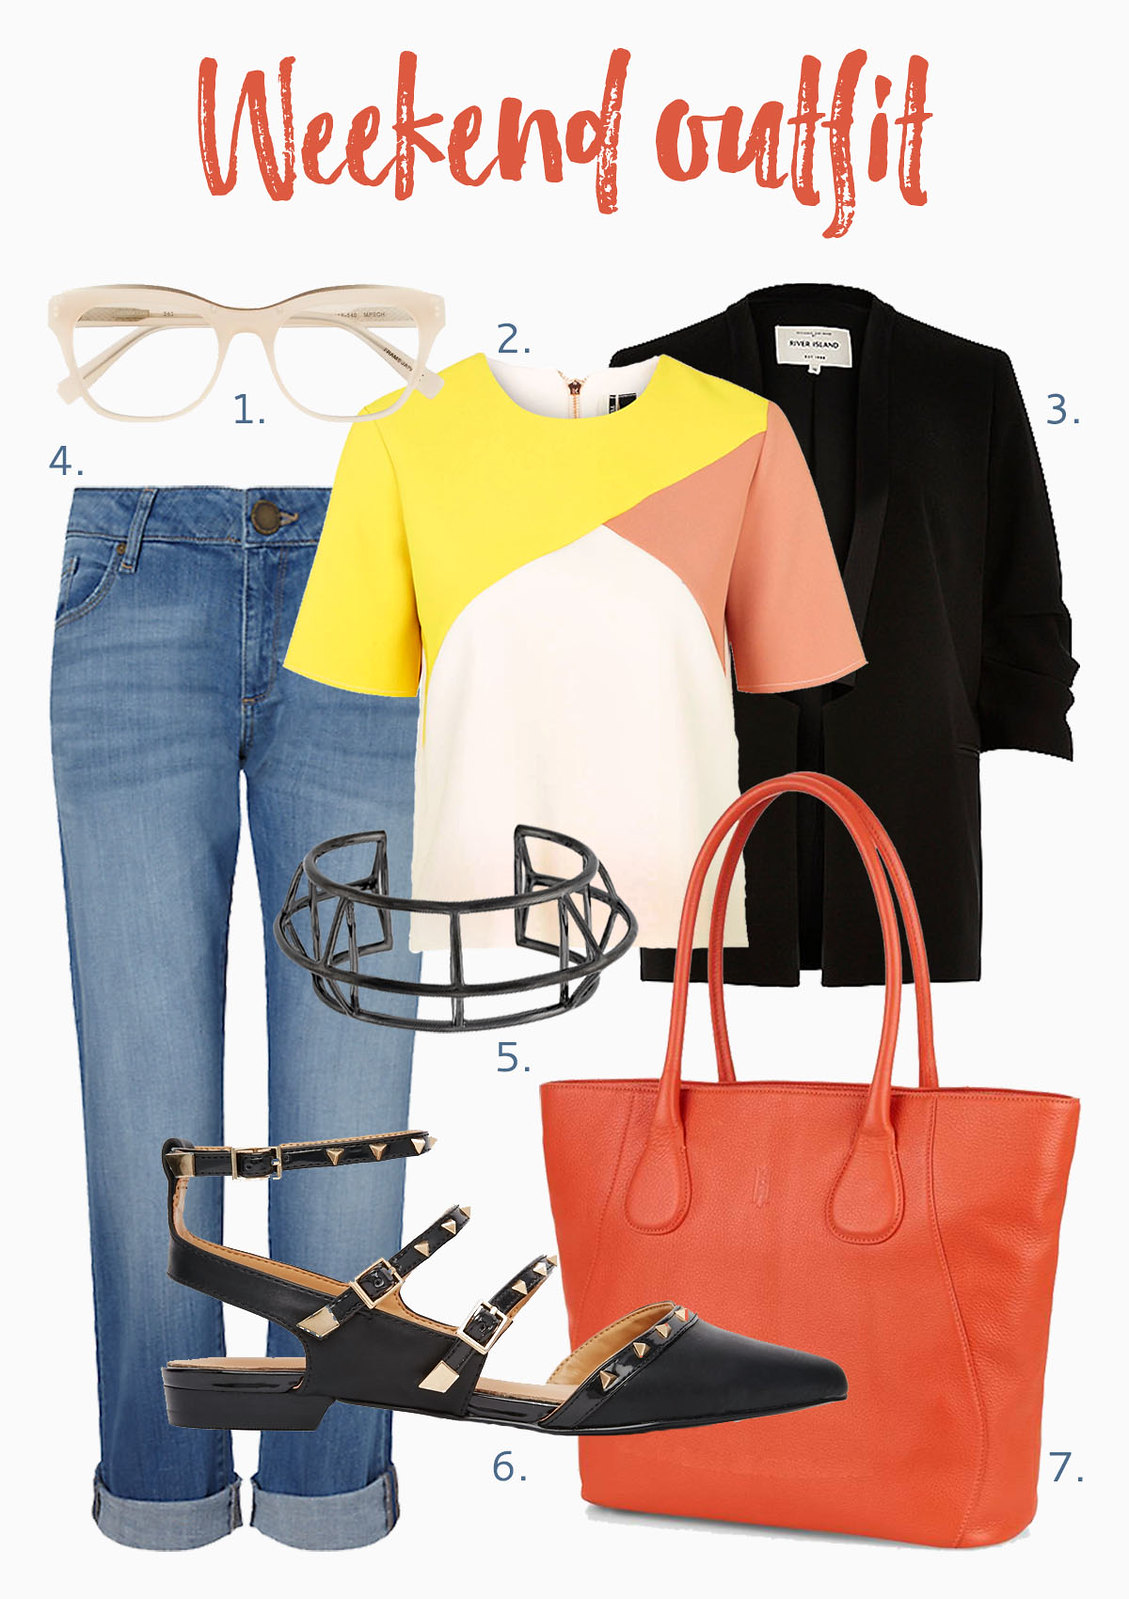 How to Style an Orange Tote Bag | Weekend outfit